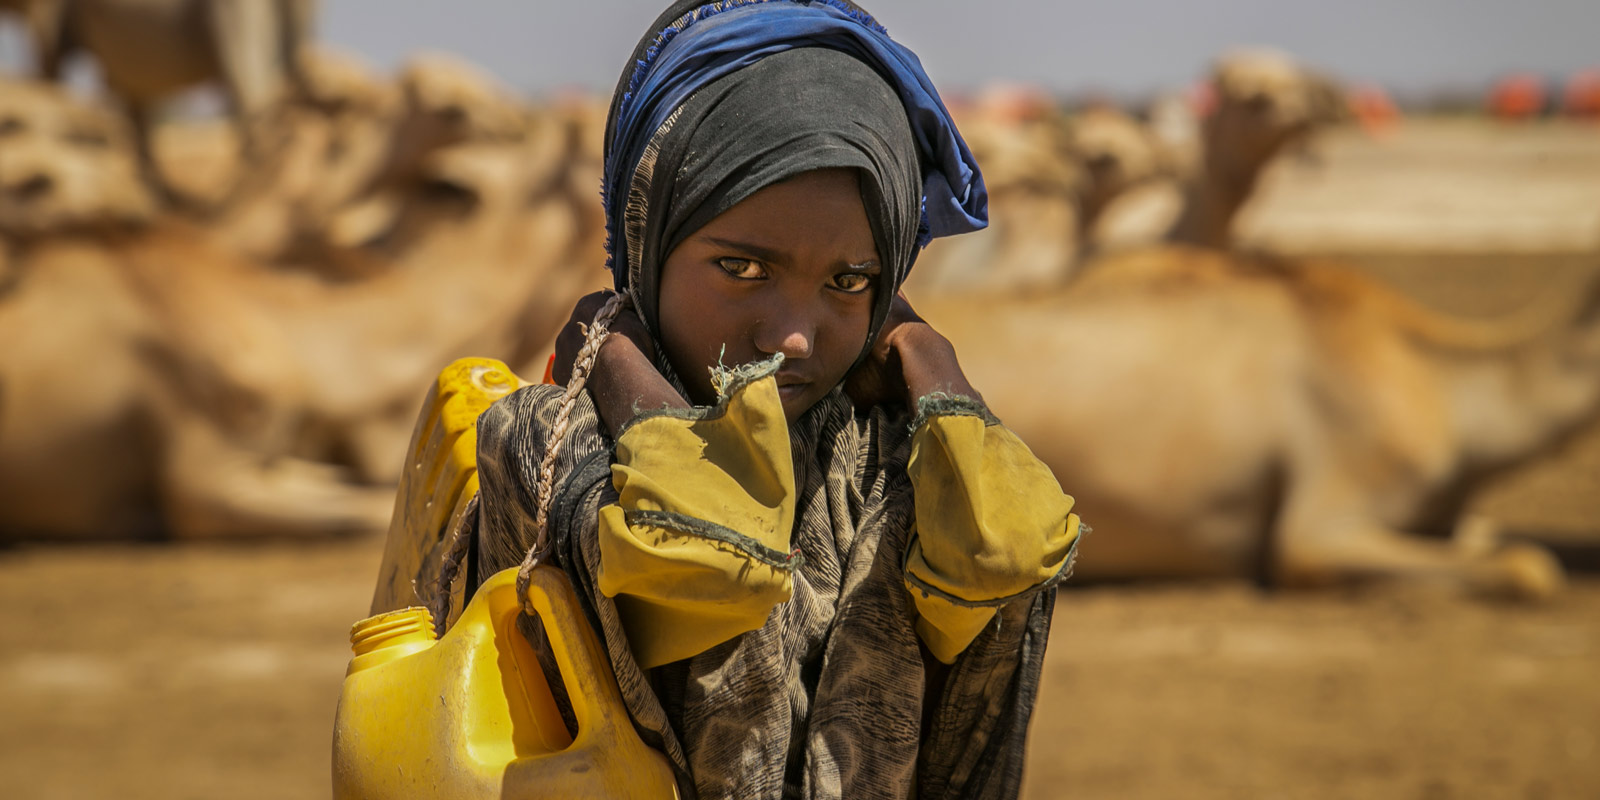 During her school break, 9-year-old Sulem Hire from Ethiopia carries jerry cans to collect water at a borehole four kilometers from her home. This means an eight kilometer walk carrying heavy jugs of water—a heavy task for a young girl.